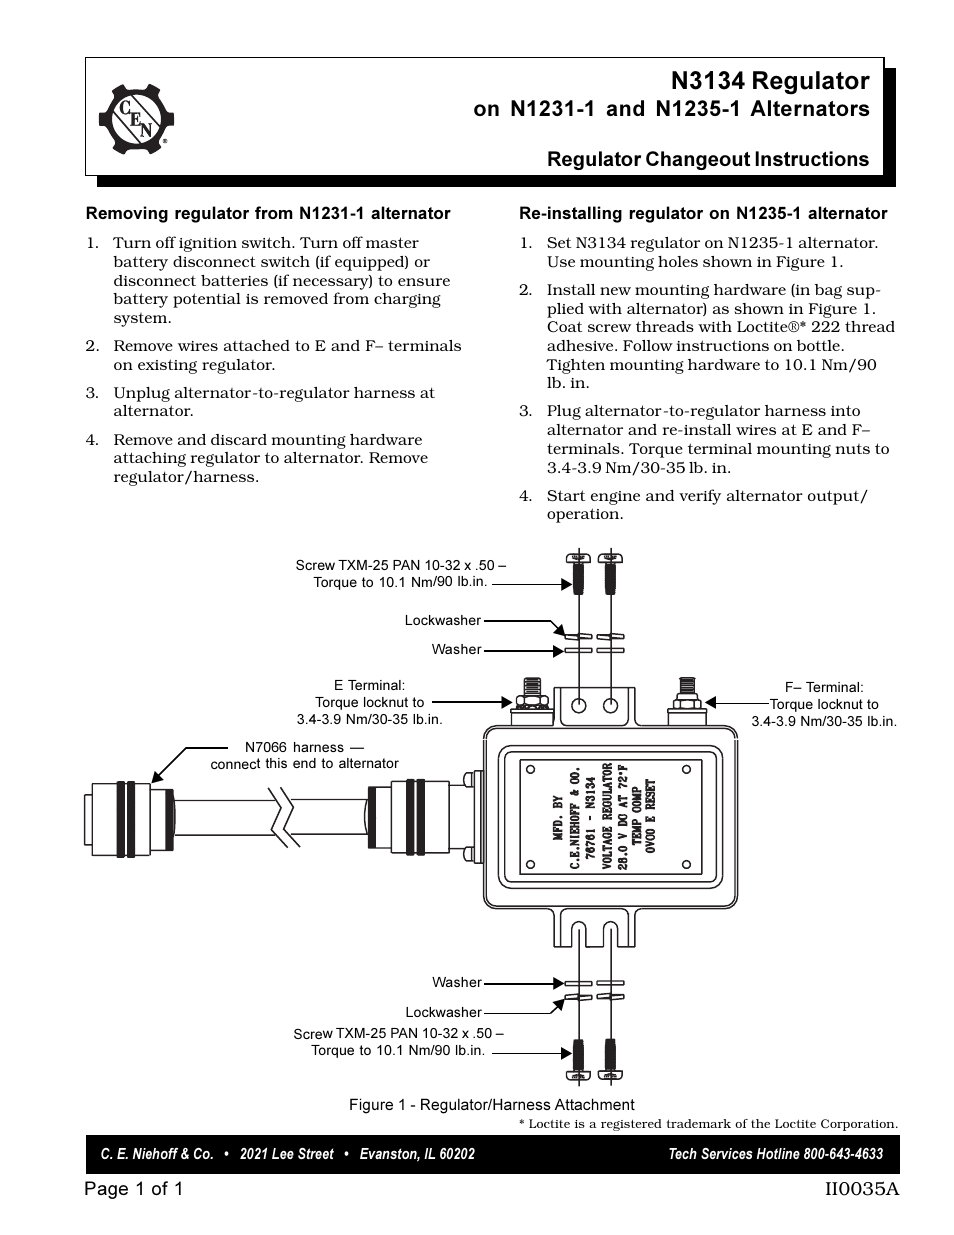 Ce Niehoff Co N3134 Regulator Changeout Instructions User Thread Correct Alternator Wiring Manual 1 Page